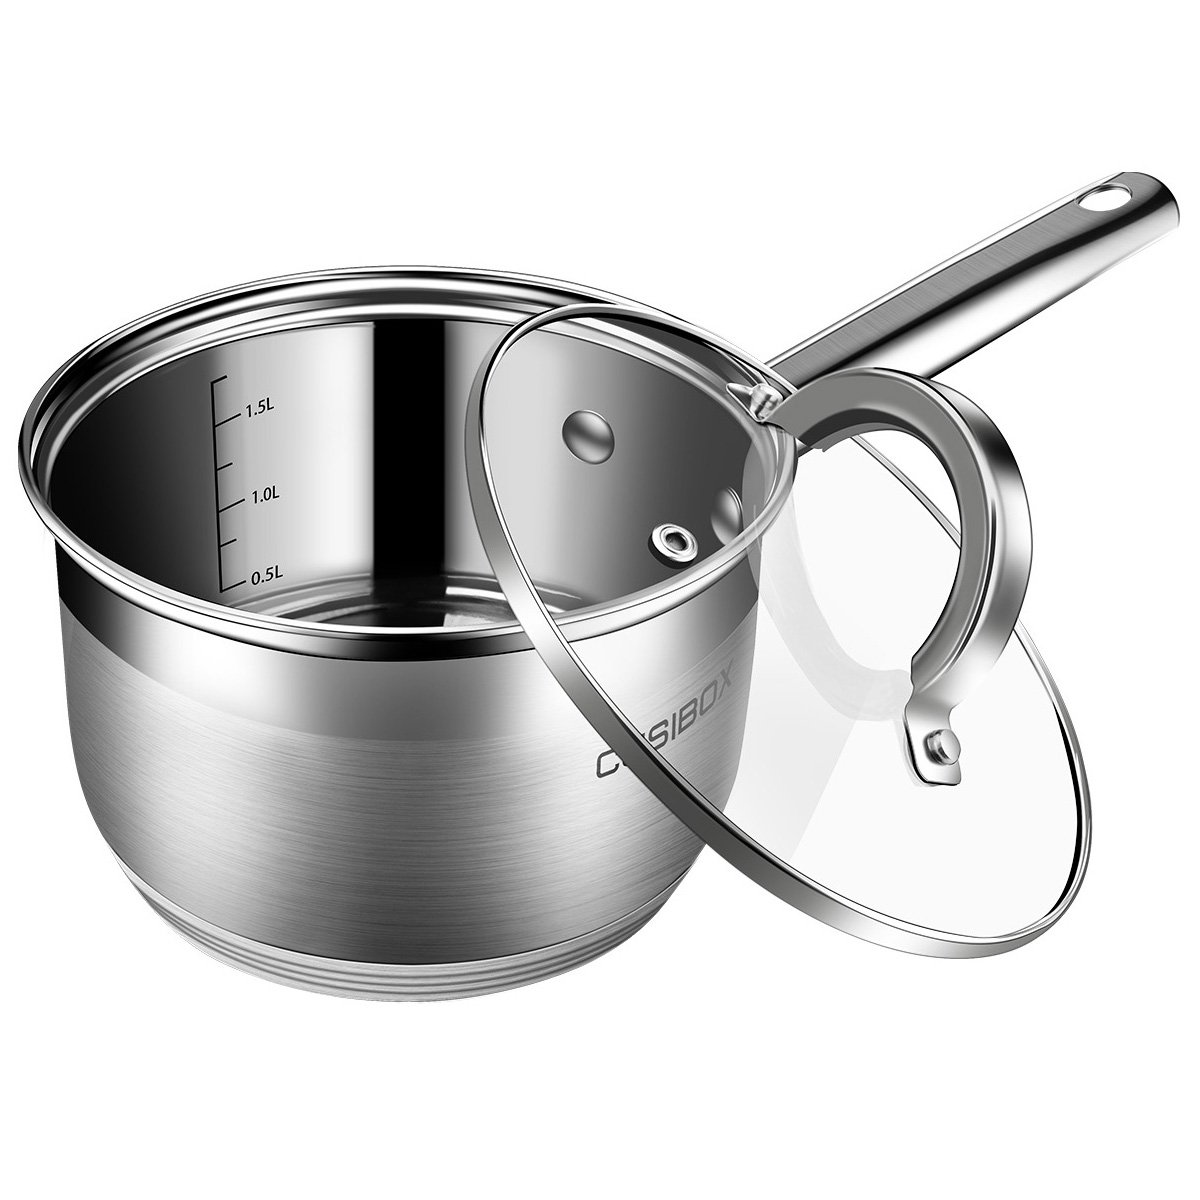 Saucepan 2 Quart, Sauce Pan with Lid Stainless Steel - Aluminum Pot